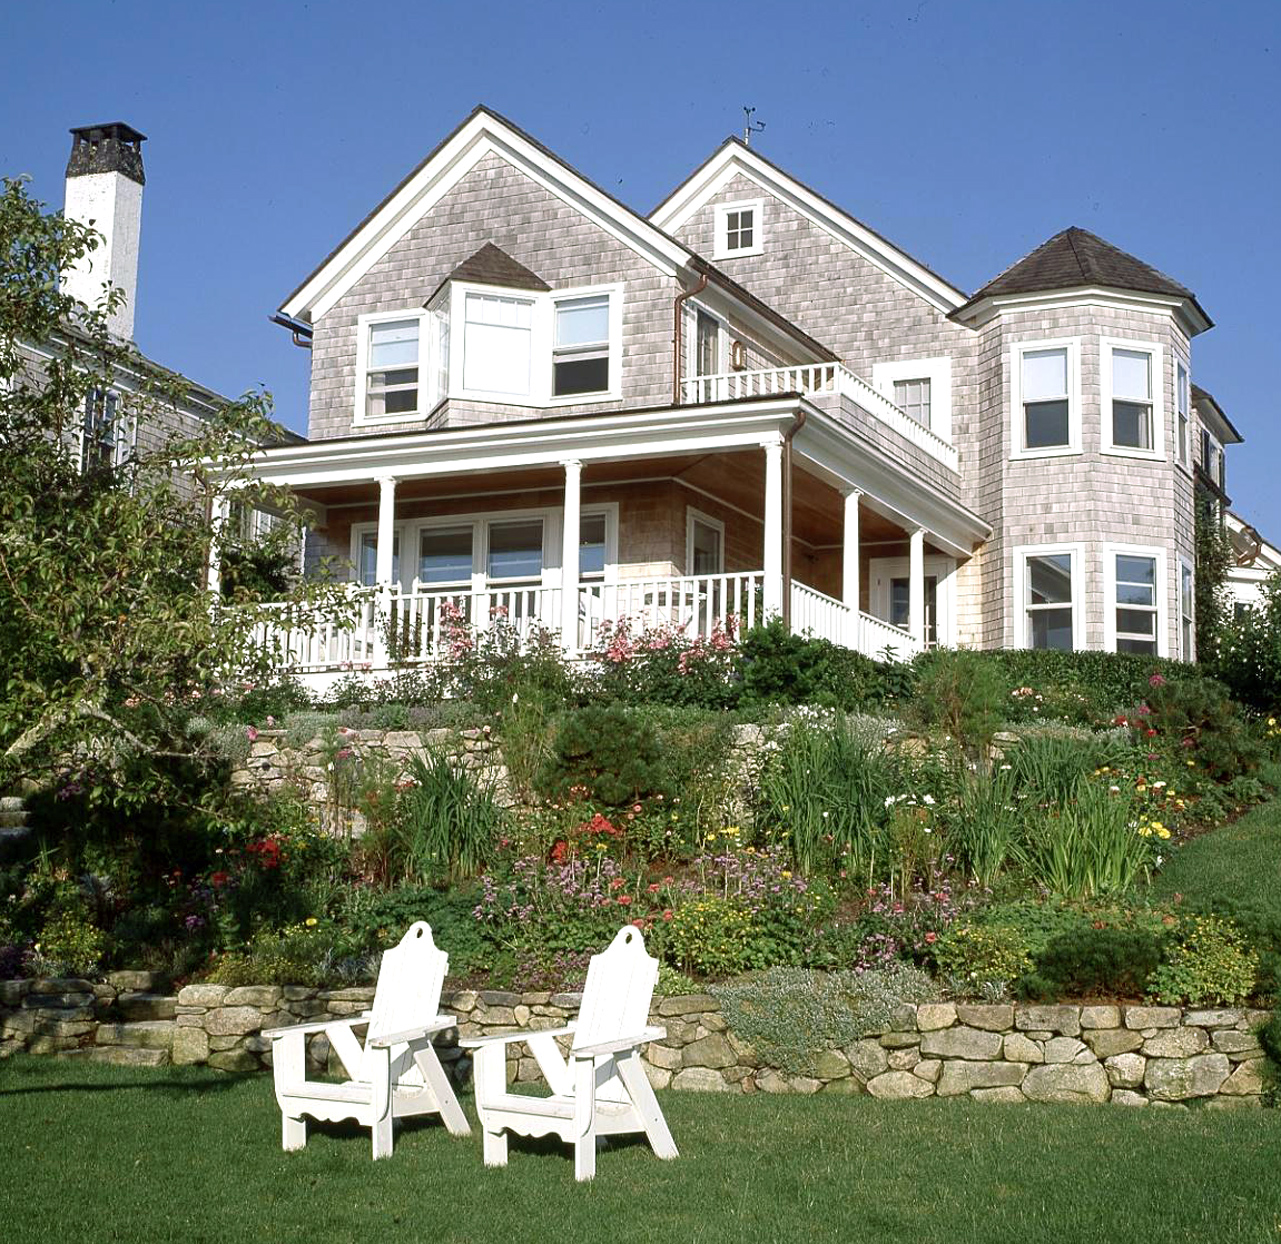 Northeast Shingle-style home with porch